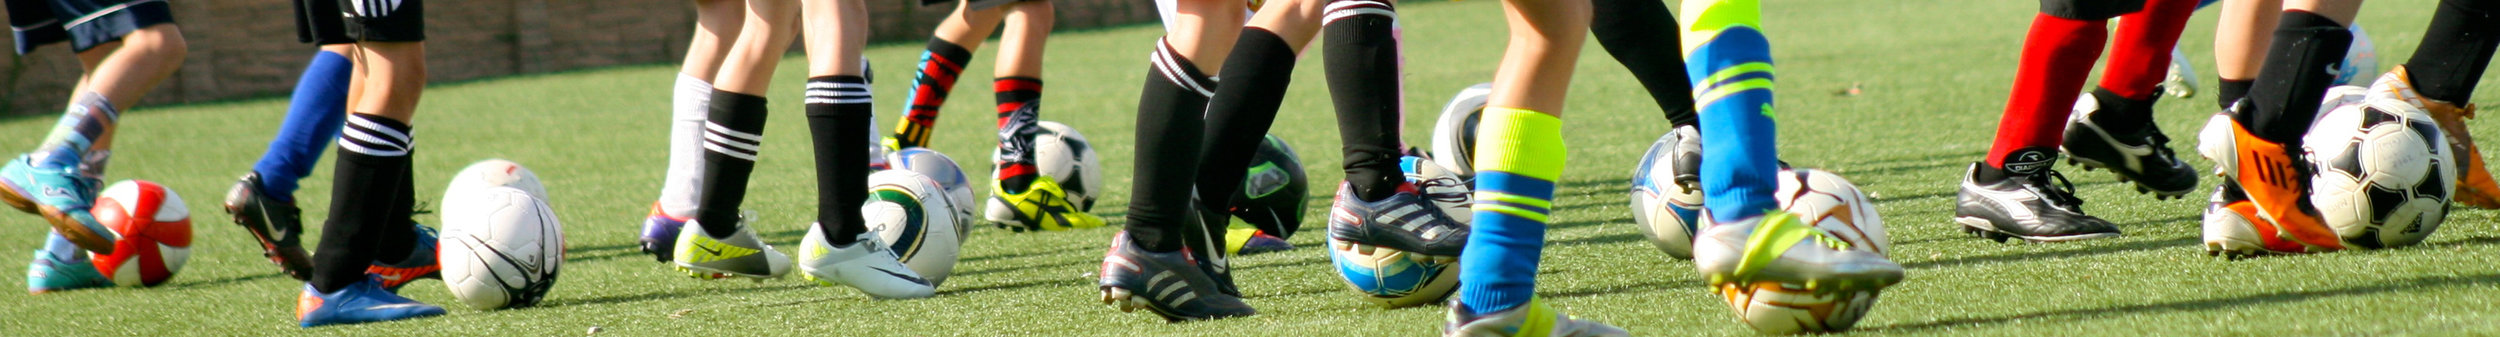 soccer_camp feet cropped.jpg